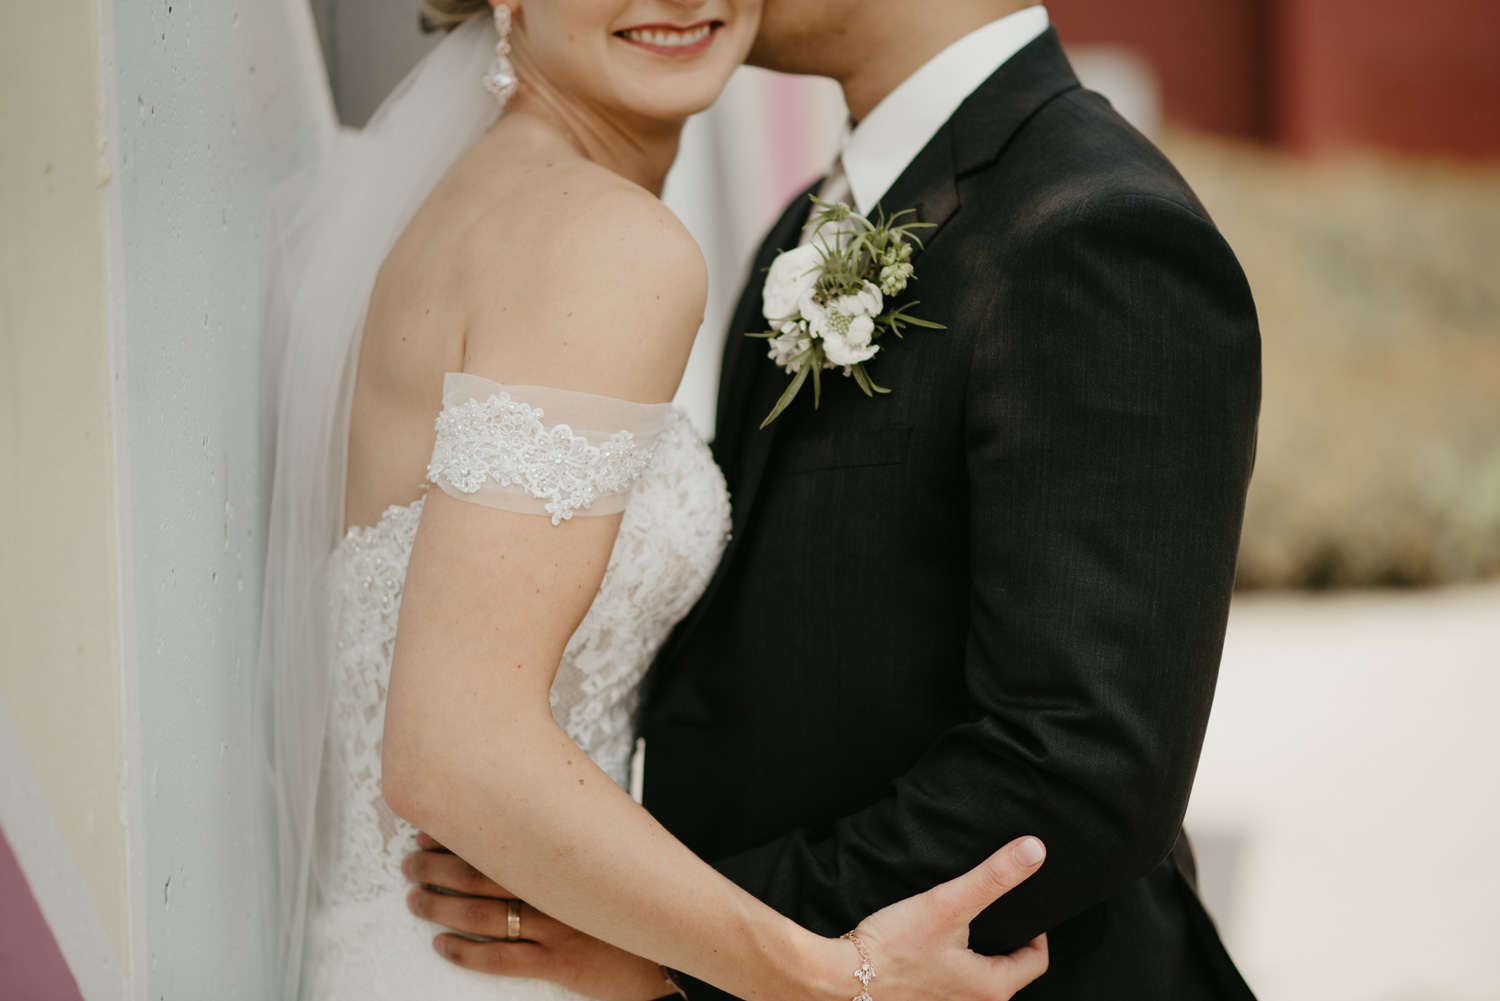 Close up image of bride and groom cuddling